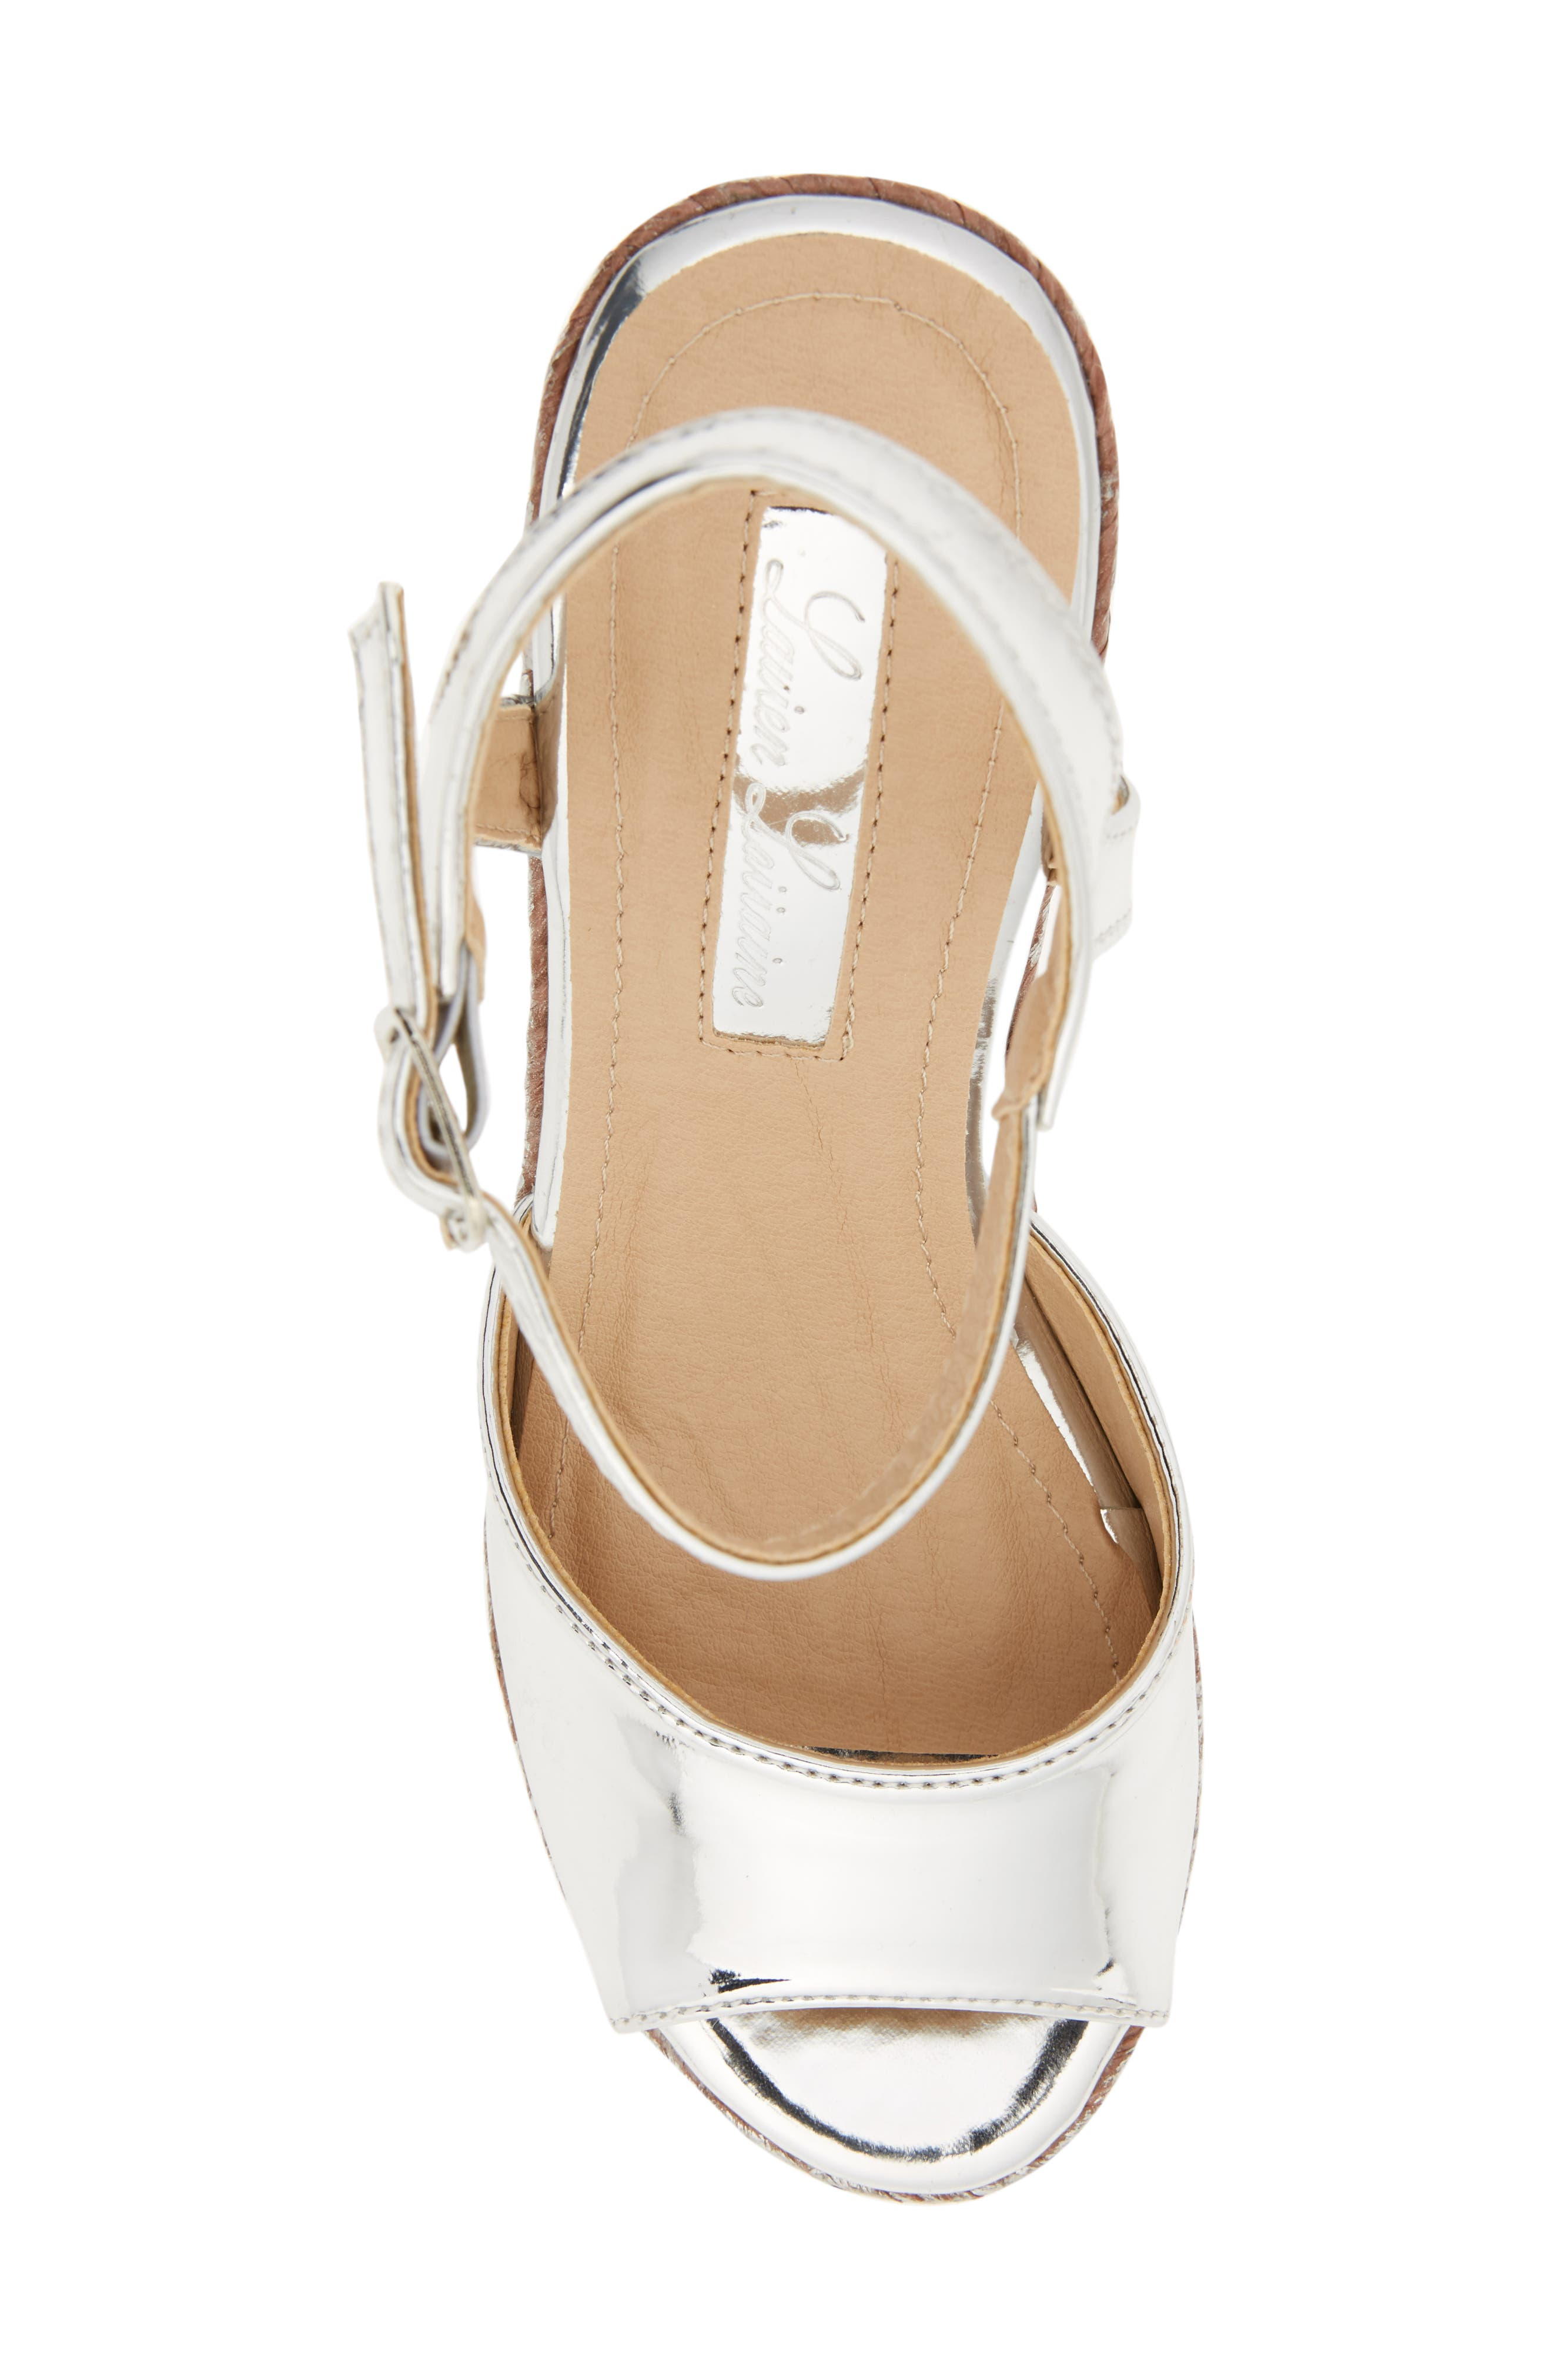 Lina Platform Wedge Sandal,                             Alternate thumbnail 5, color,                             SILVER